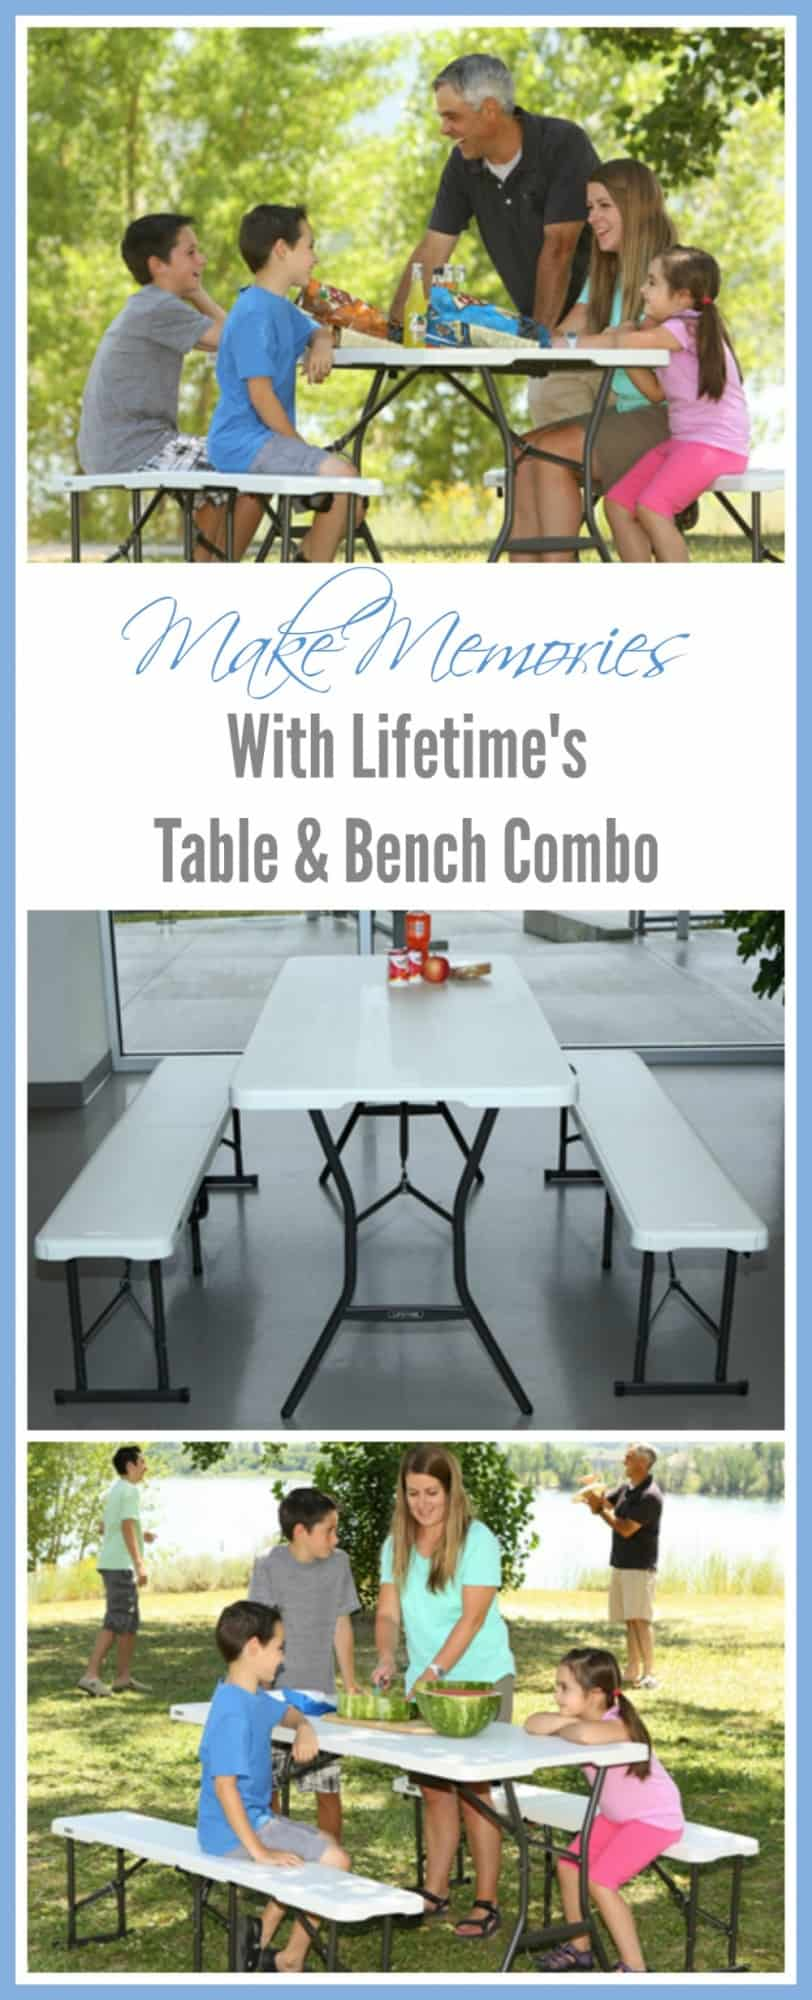 Wondrous Lifetime Table And Bench Set Review Thrifty Nifty Mommy Pabps2019 Chair Design Images Pabps2019Com